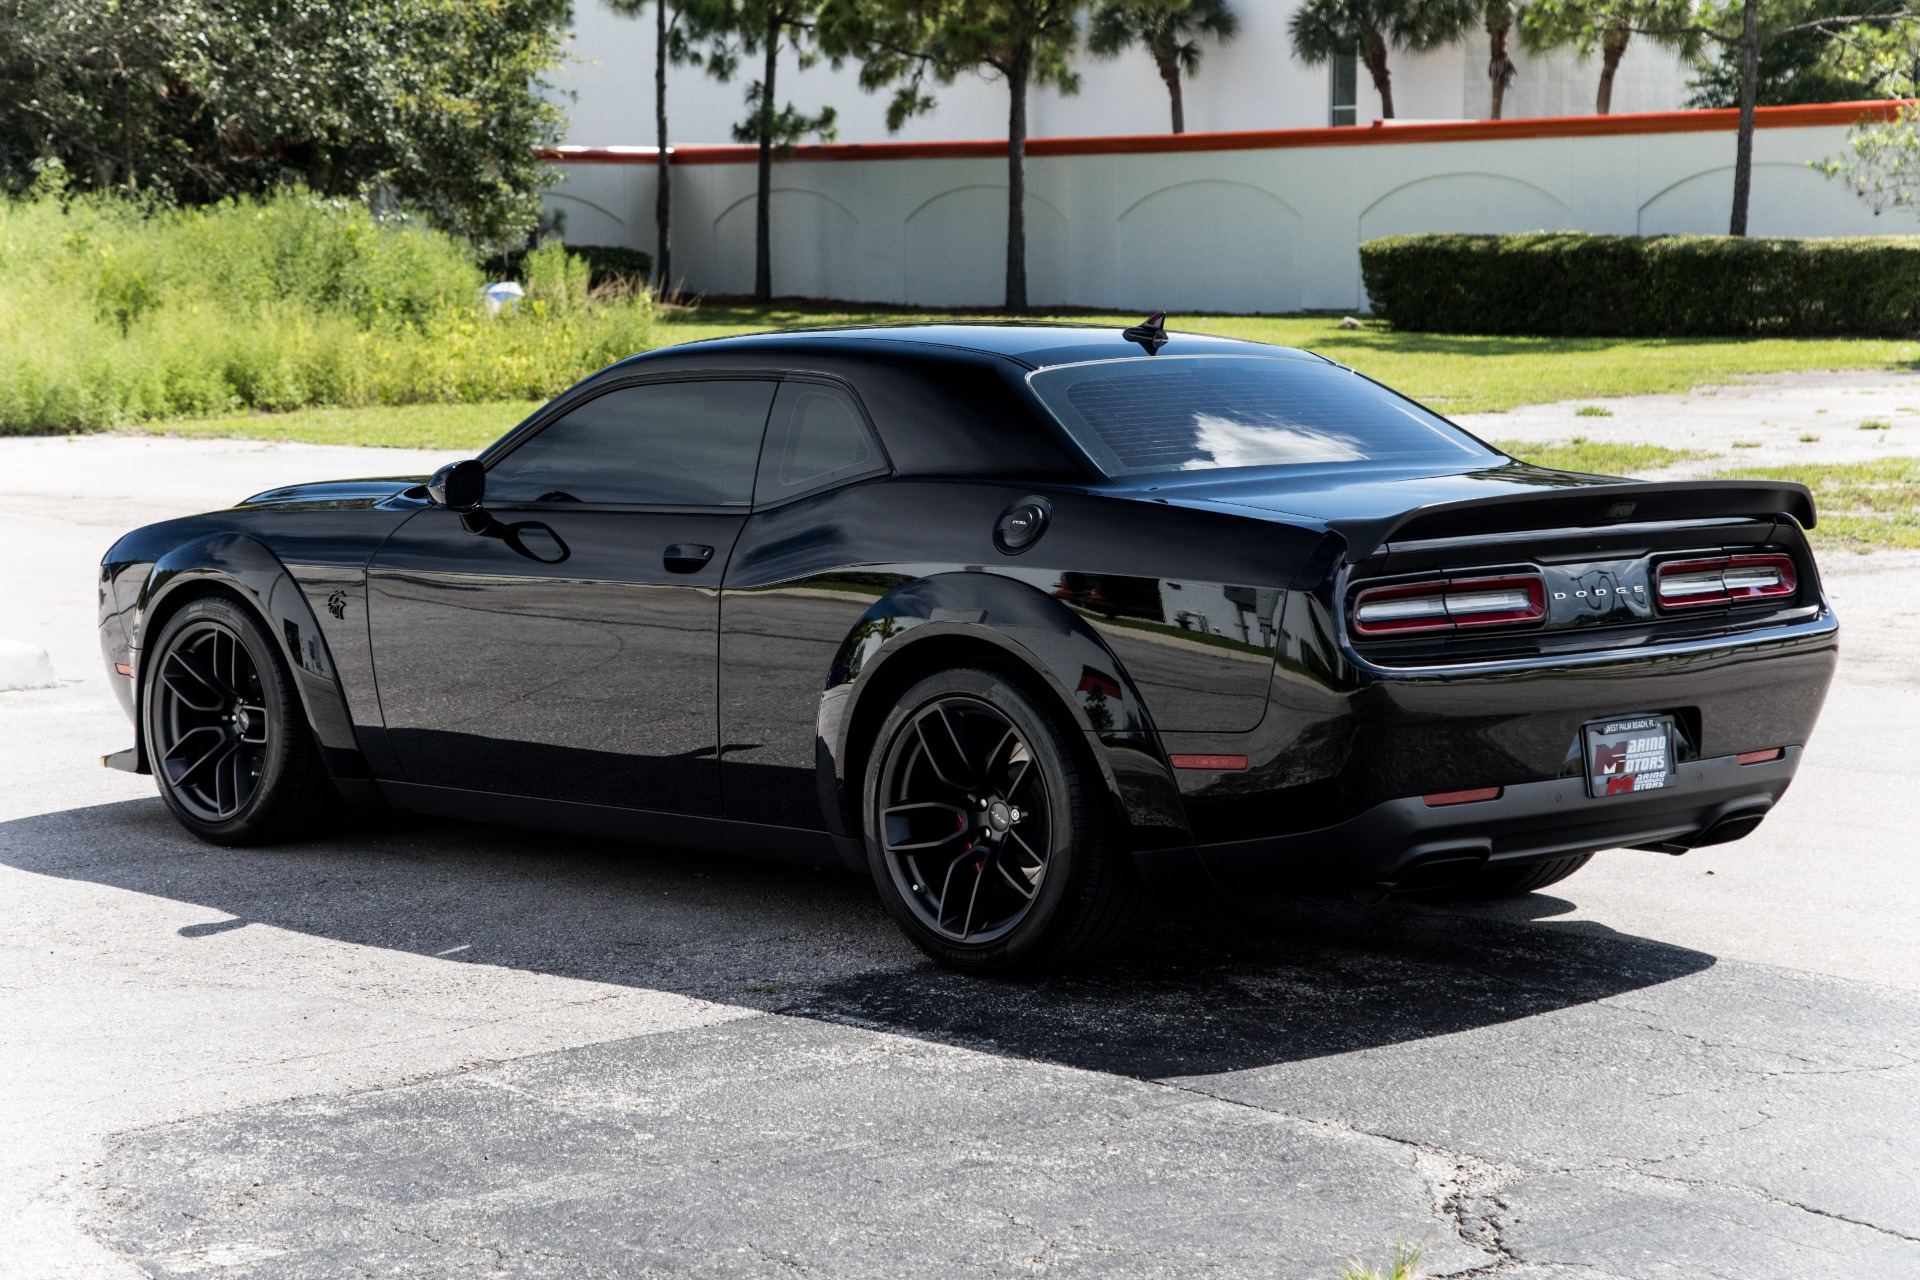 Used 2019 Dodge Challenger Srt Hellcat Redeye Widebody For Sale 77 900 Marino Performance Motors Stock 694548